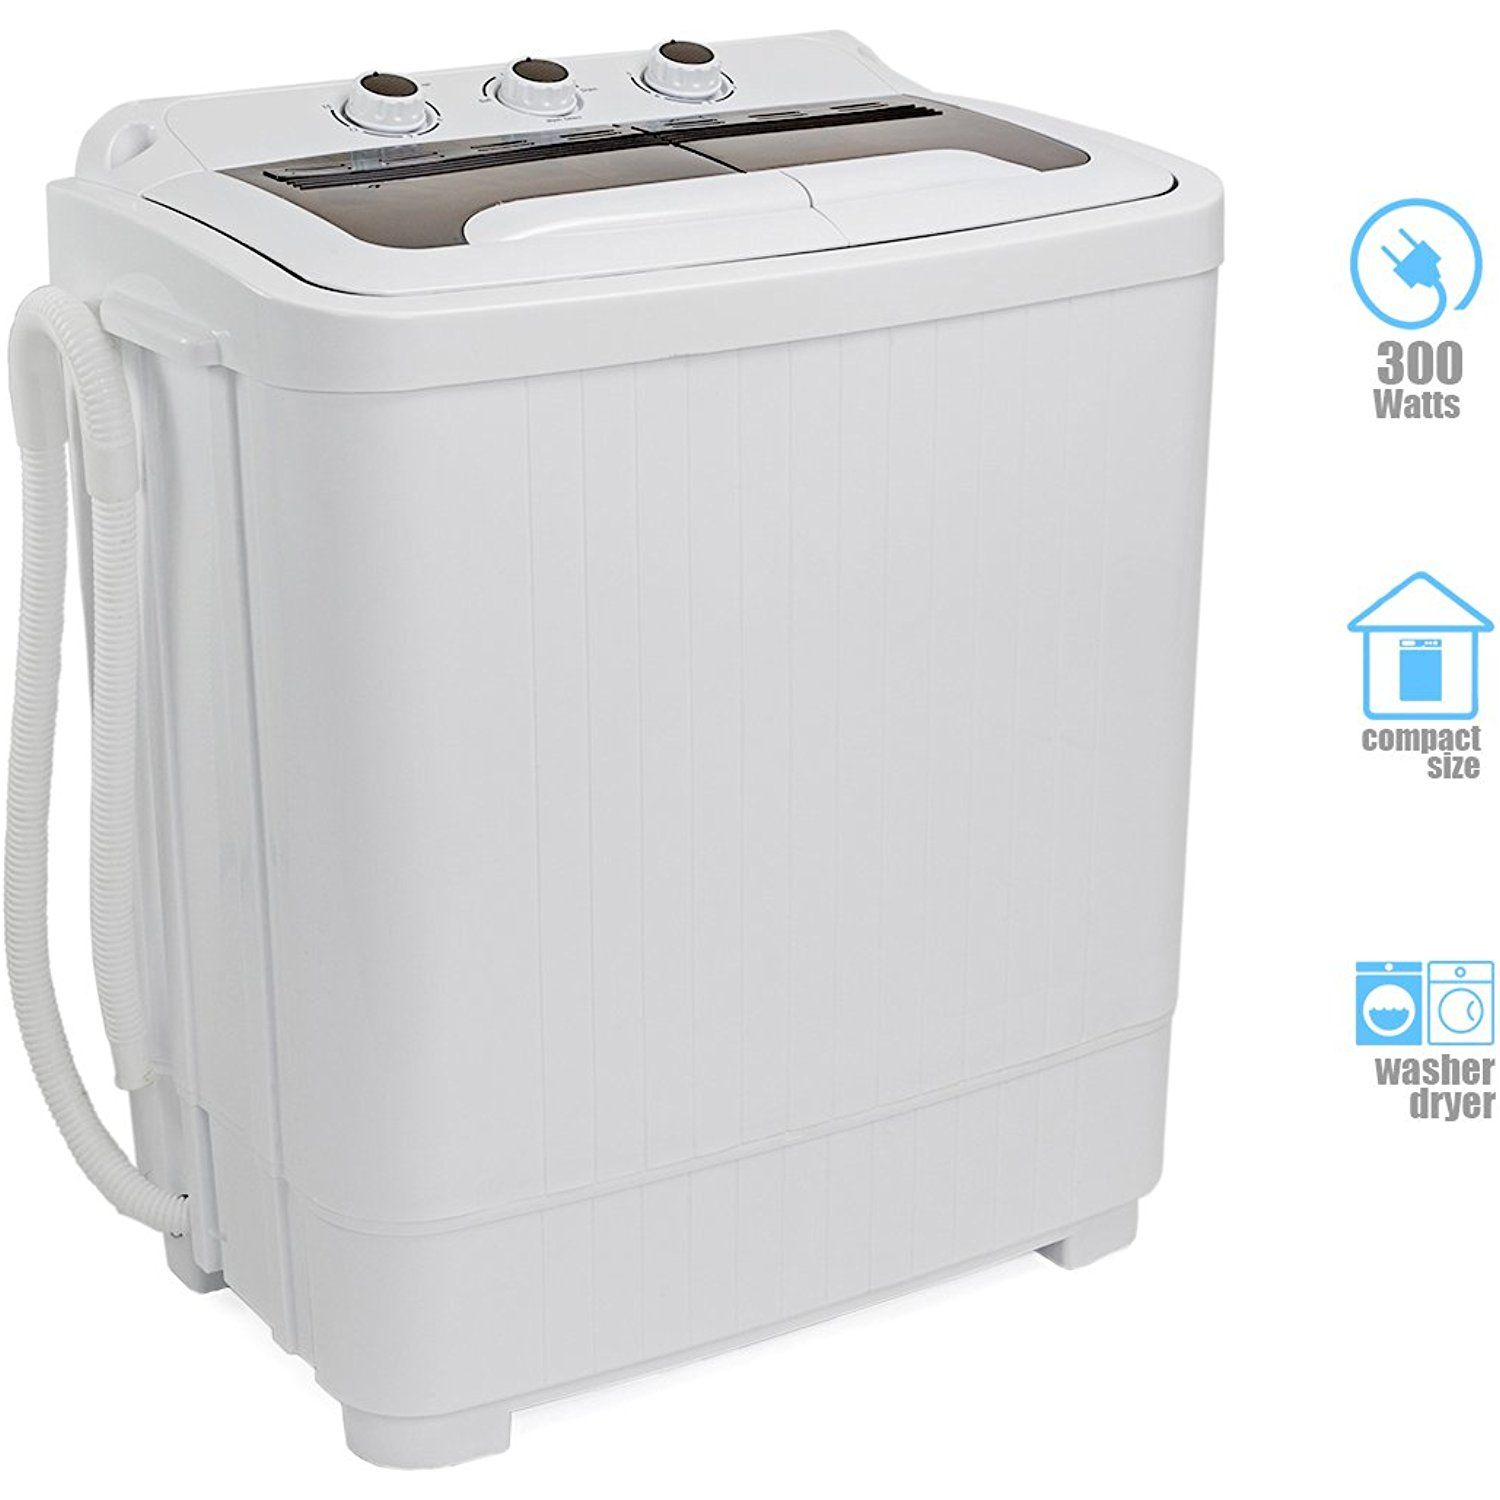 Portable Compact Washer And Spin Dry Cycle With Built In Pump 300w Apartment Washer Spinning Dryer With Images Compact Washer Apartment Washer Whirlpool Bathtub